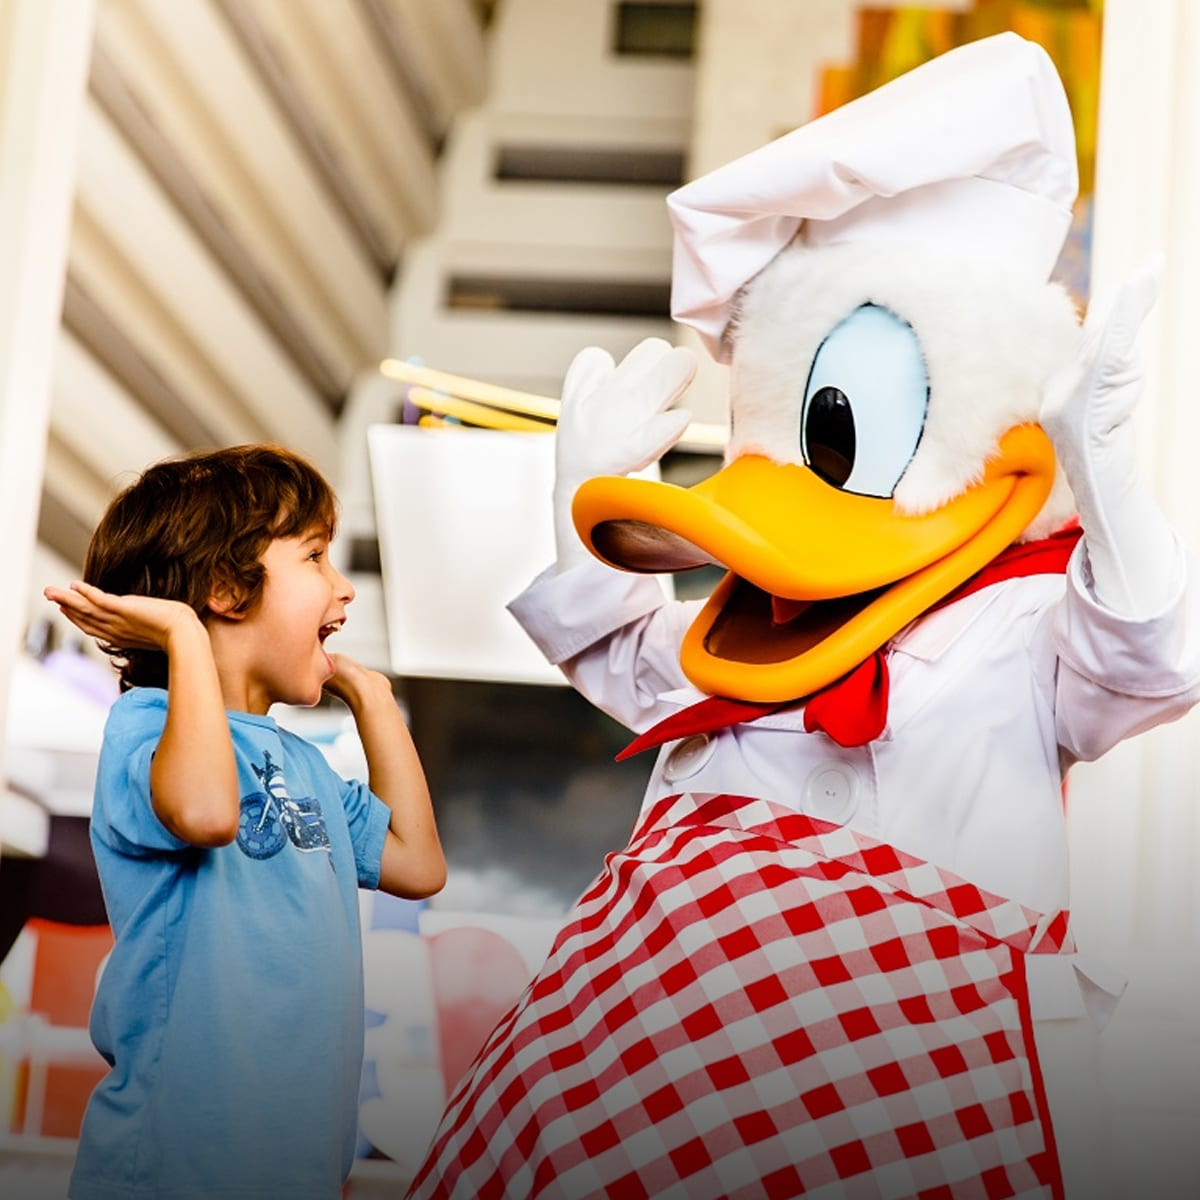 Donald Duck in a chef outfit laughing with a child